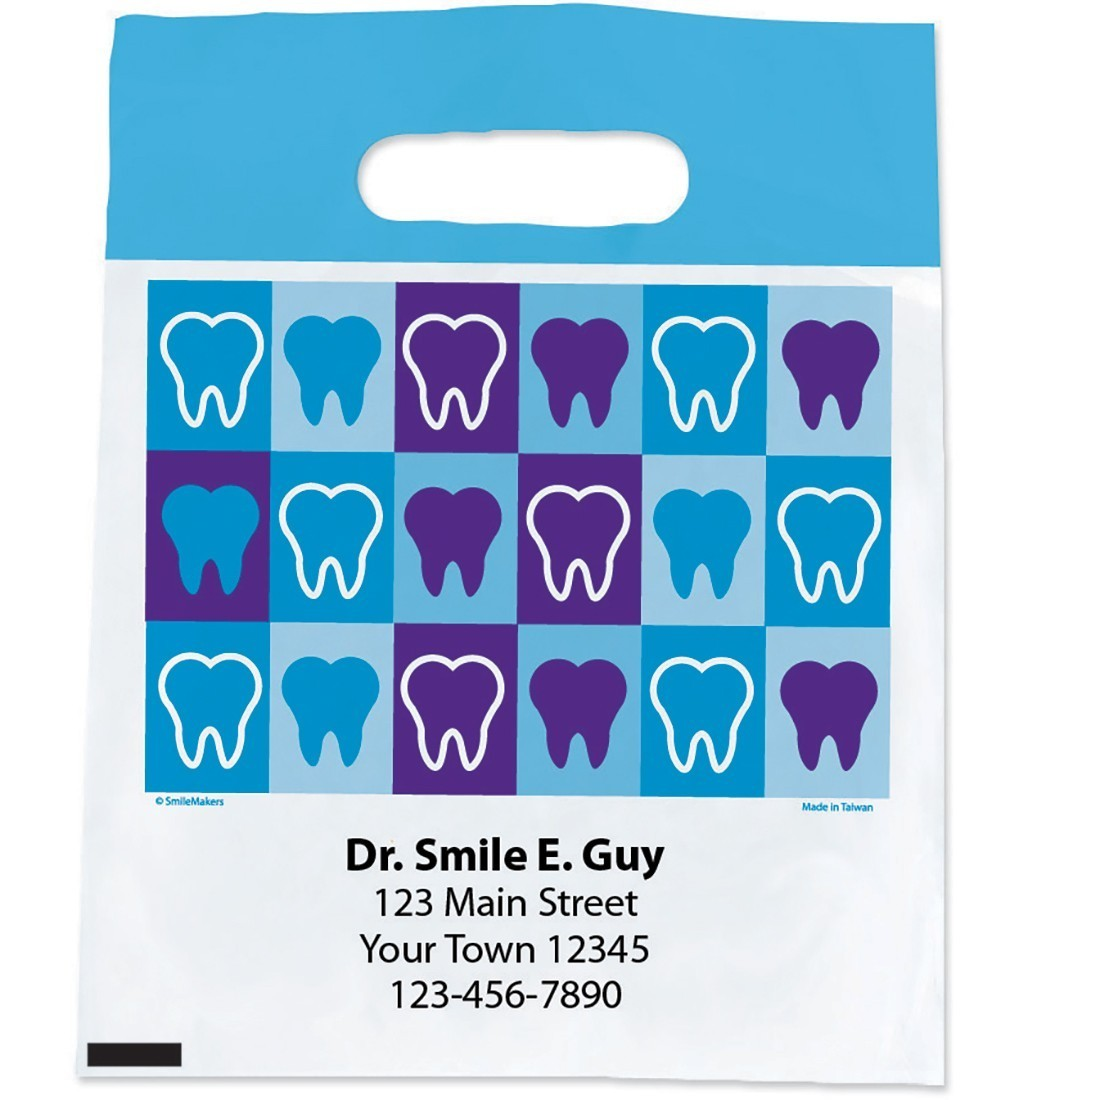 Custom Teeth Block Bags [image]